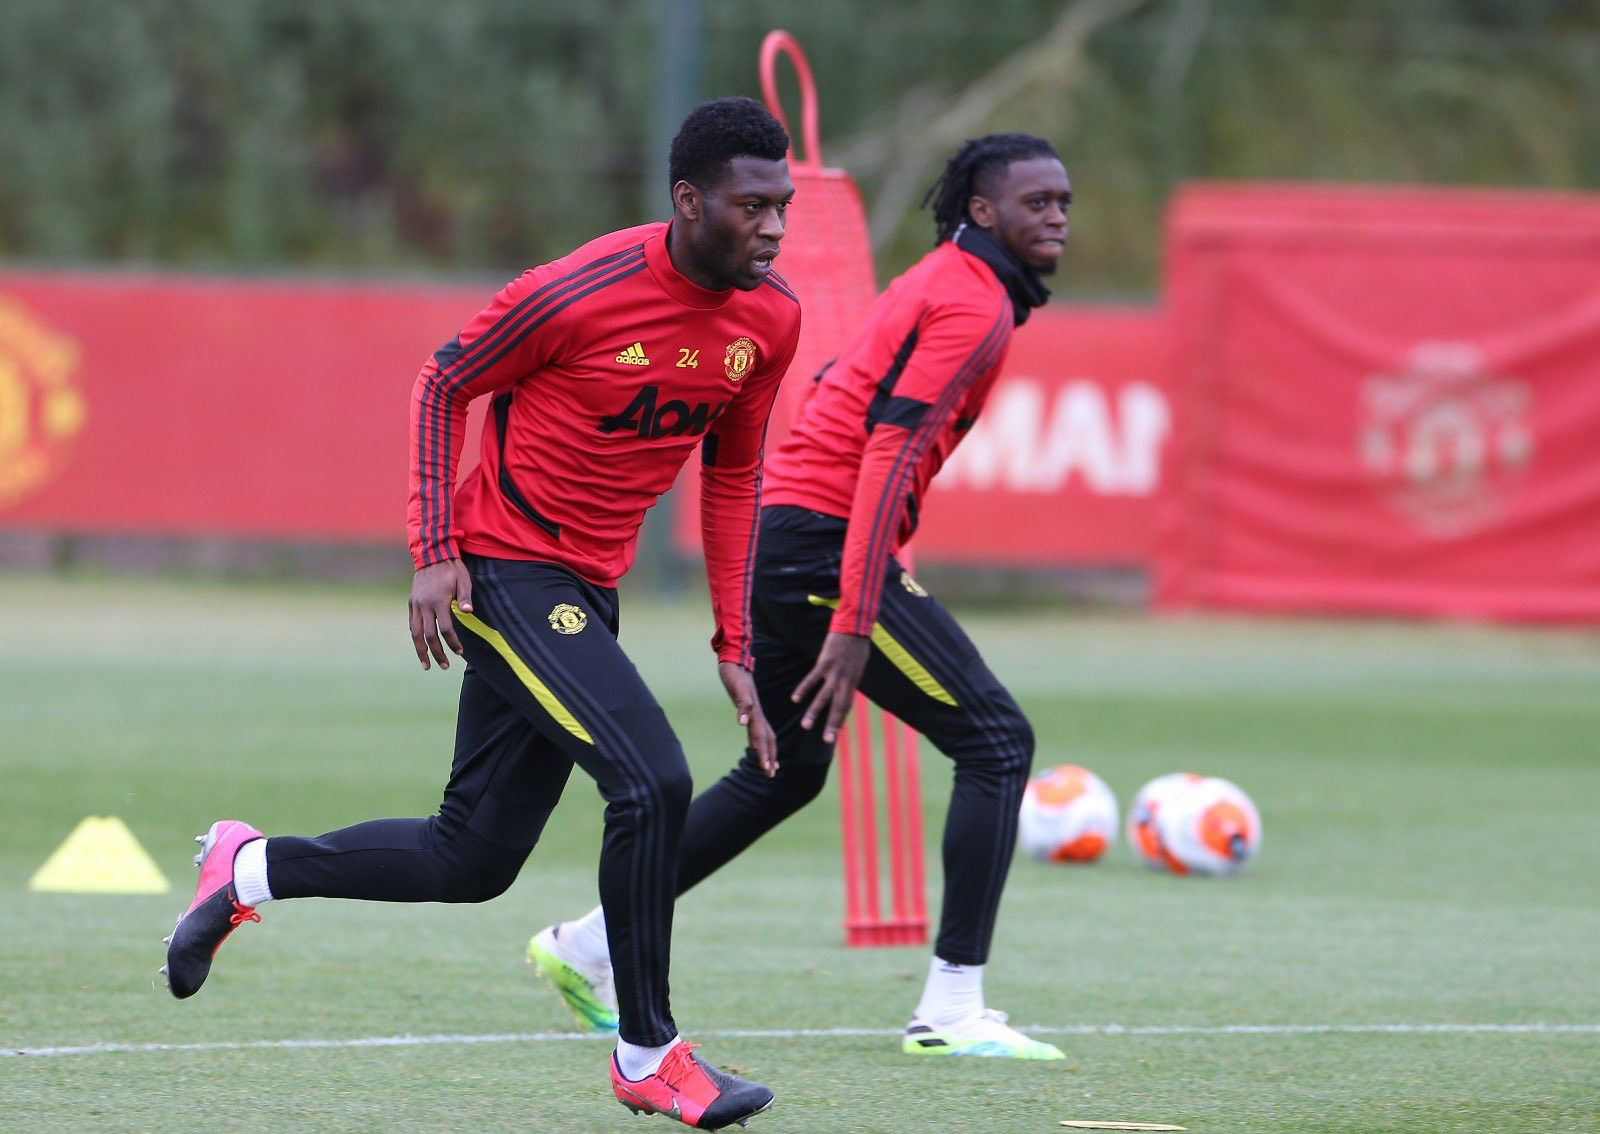 Pin By Red Devils On Manchester United Training Team In 2020 Manchester United Training Manchester United Manchester